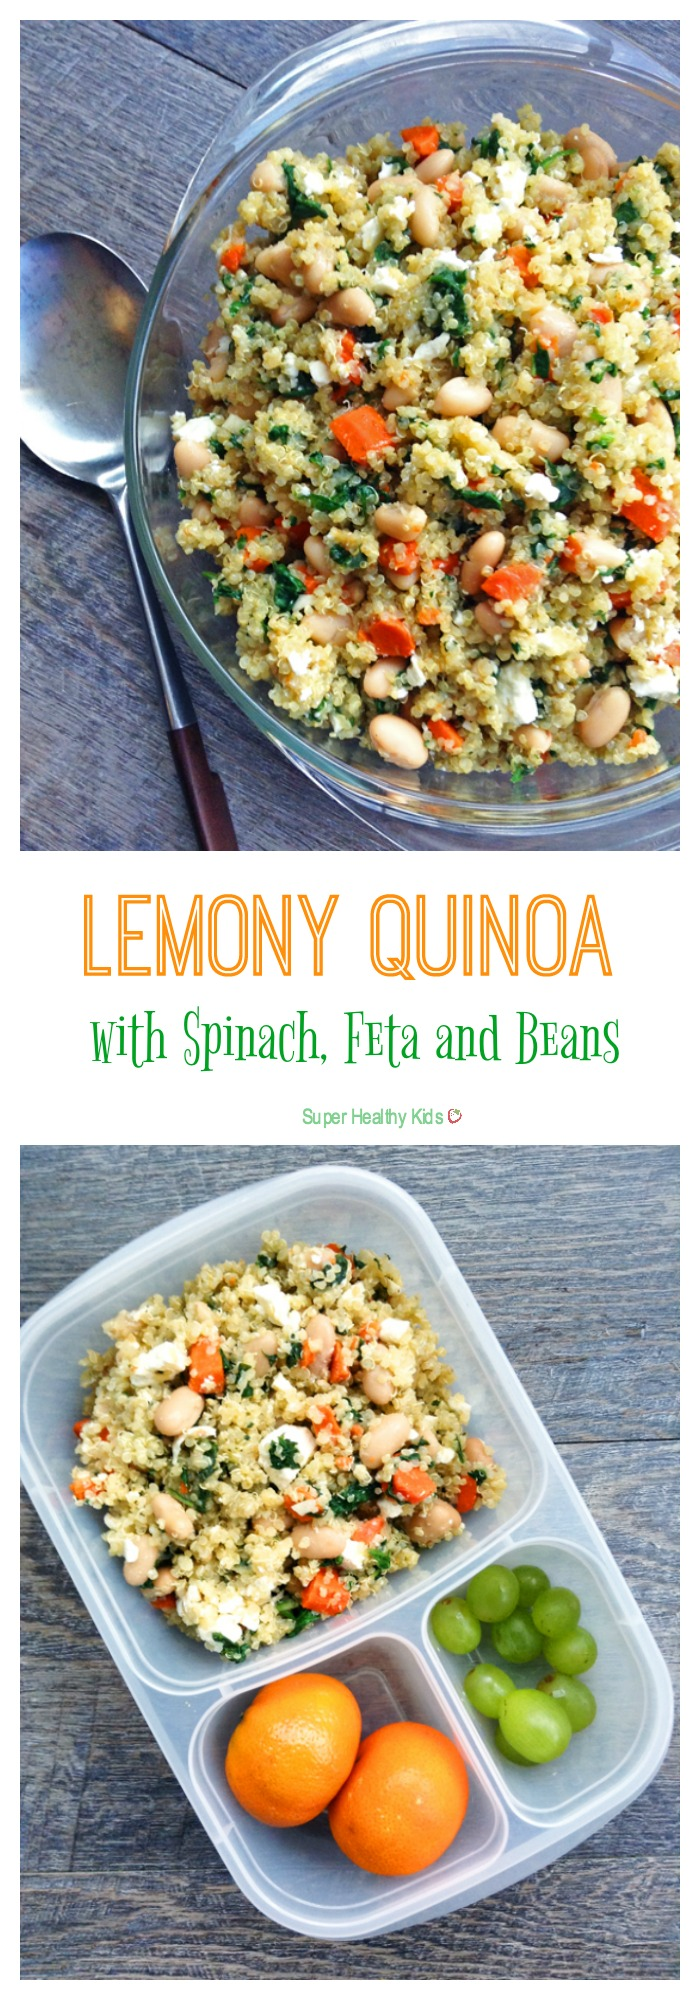 Lemony Quinoa with Spinach, Feta and Beans. Mediterranean flavors inspire this hearty, one-pot Meatless Monday meal. Make this Lemony Quinoa with Spinach, Feta and Beans this week. http://www.superhealthykids.com/lemony-quinoa-spinach-feta-beans/